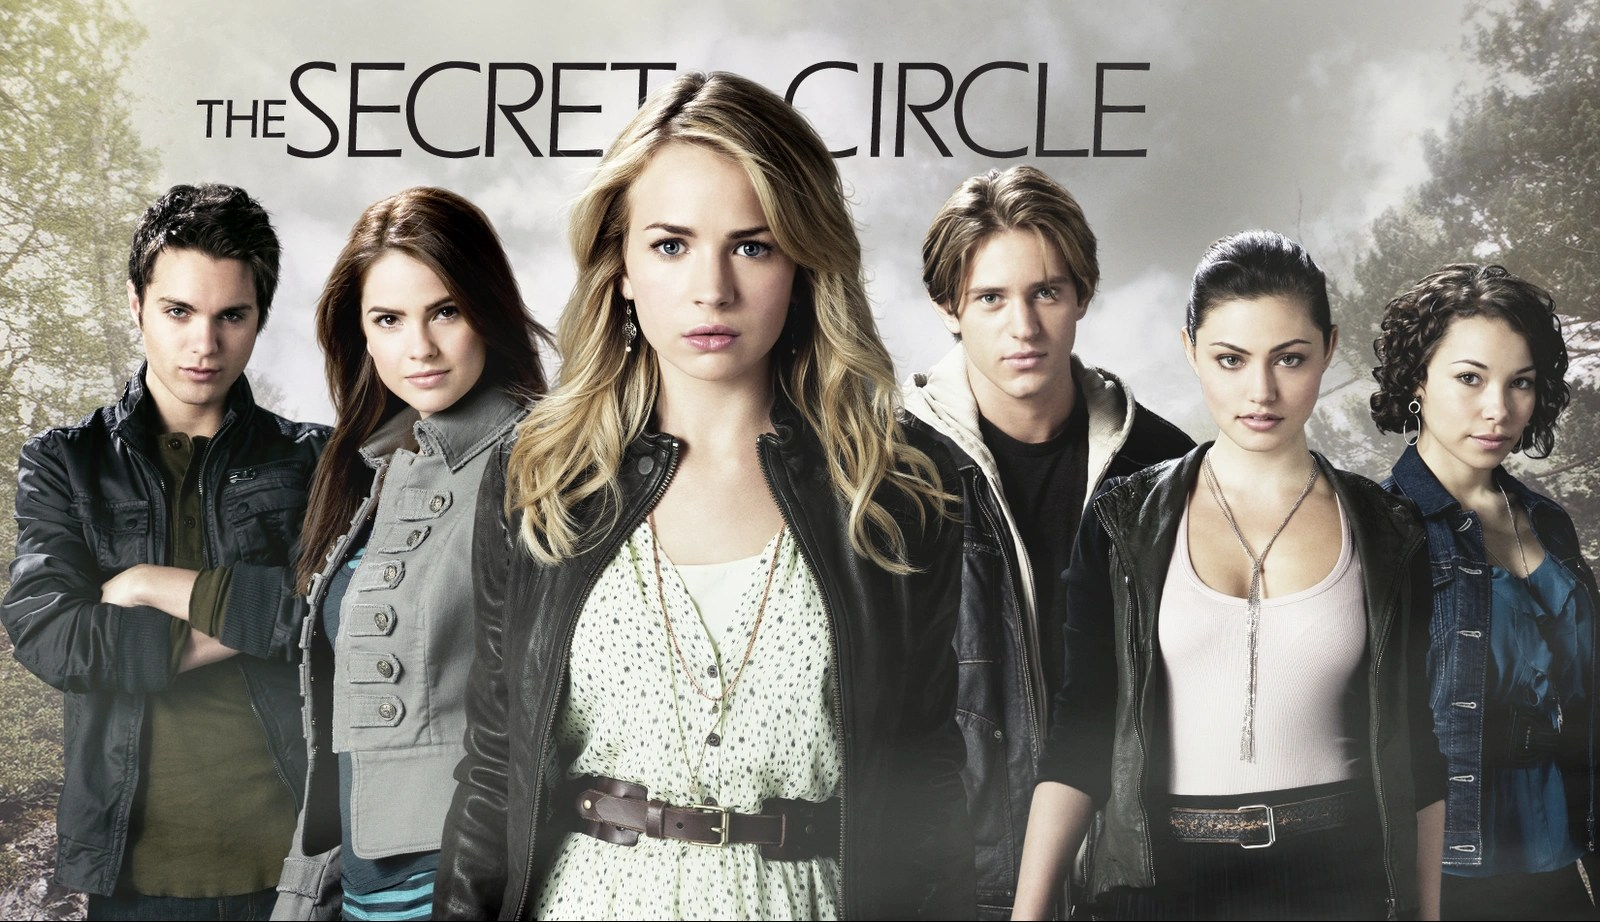 https://i1.wp.com/img2.wikia.nocookie.net/__cb20131208205442/secretcircle/images/c/cc/The-secret-circle-0.png